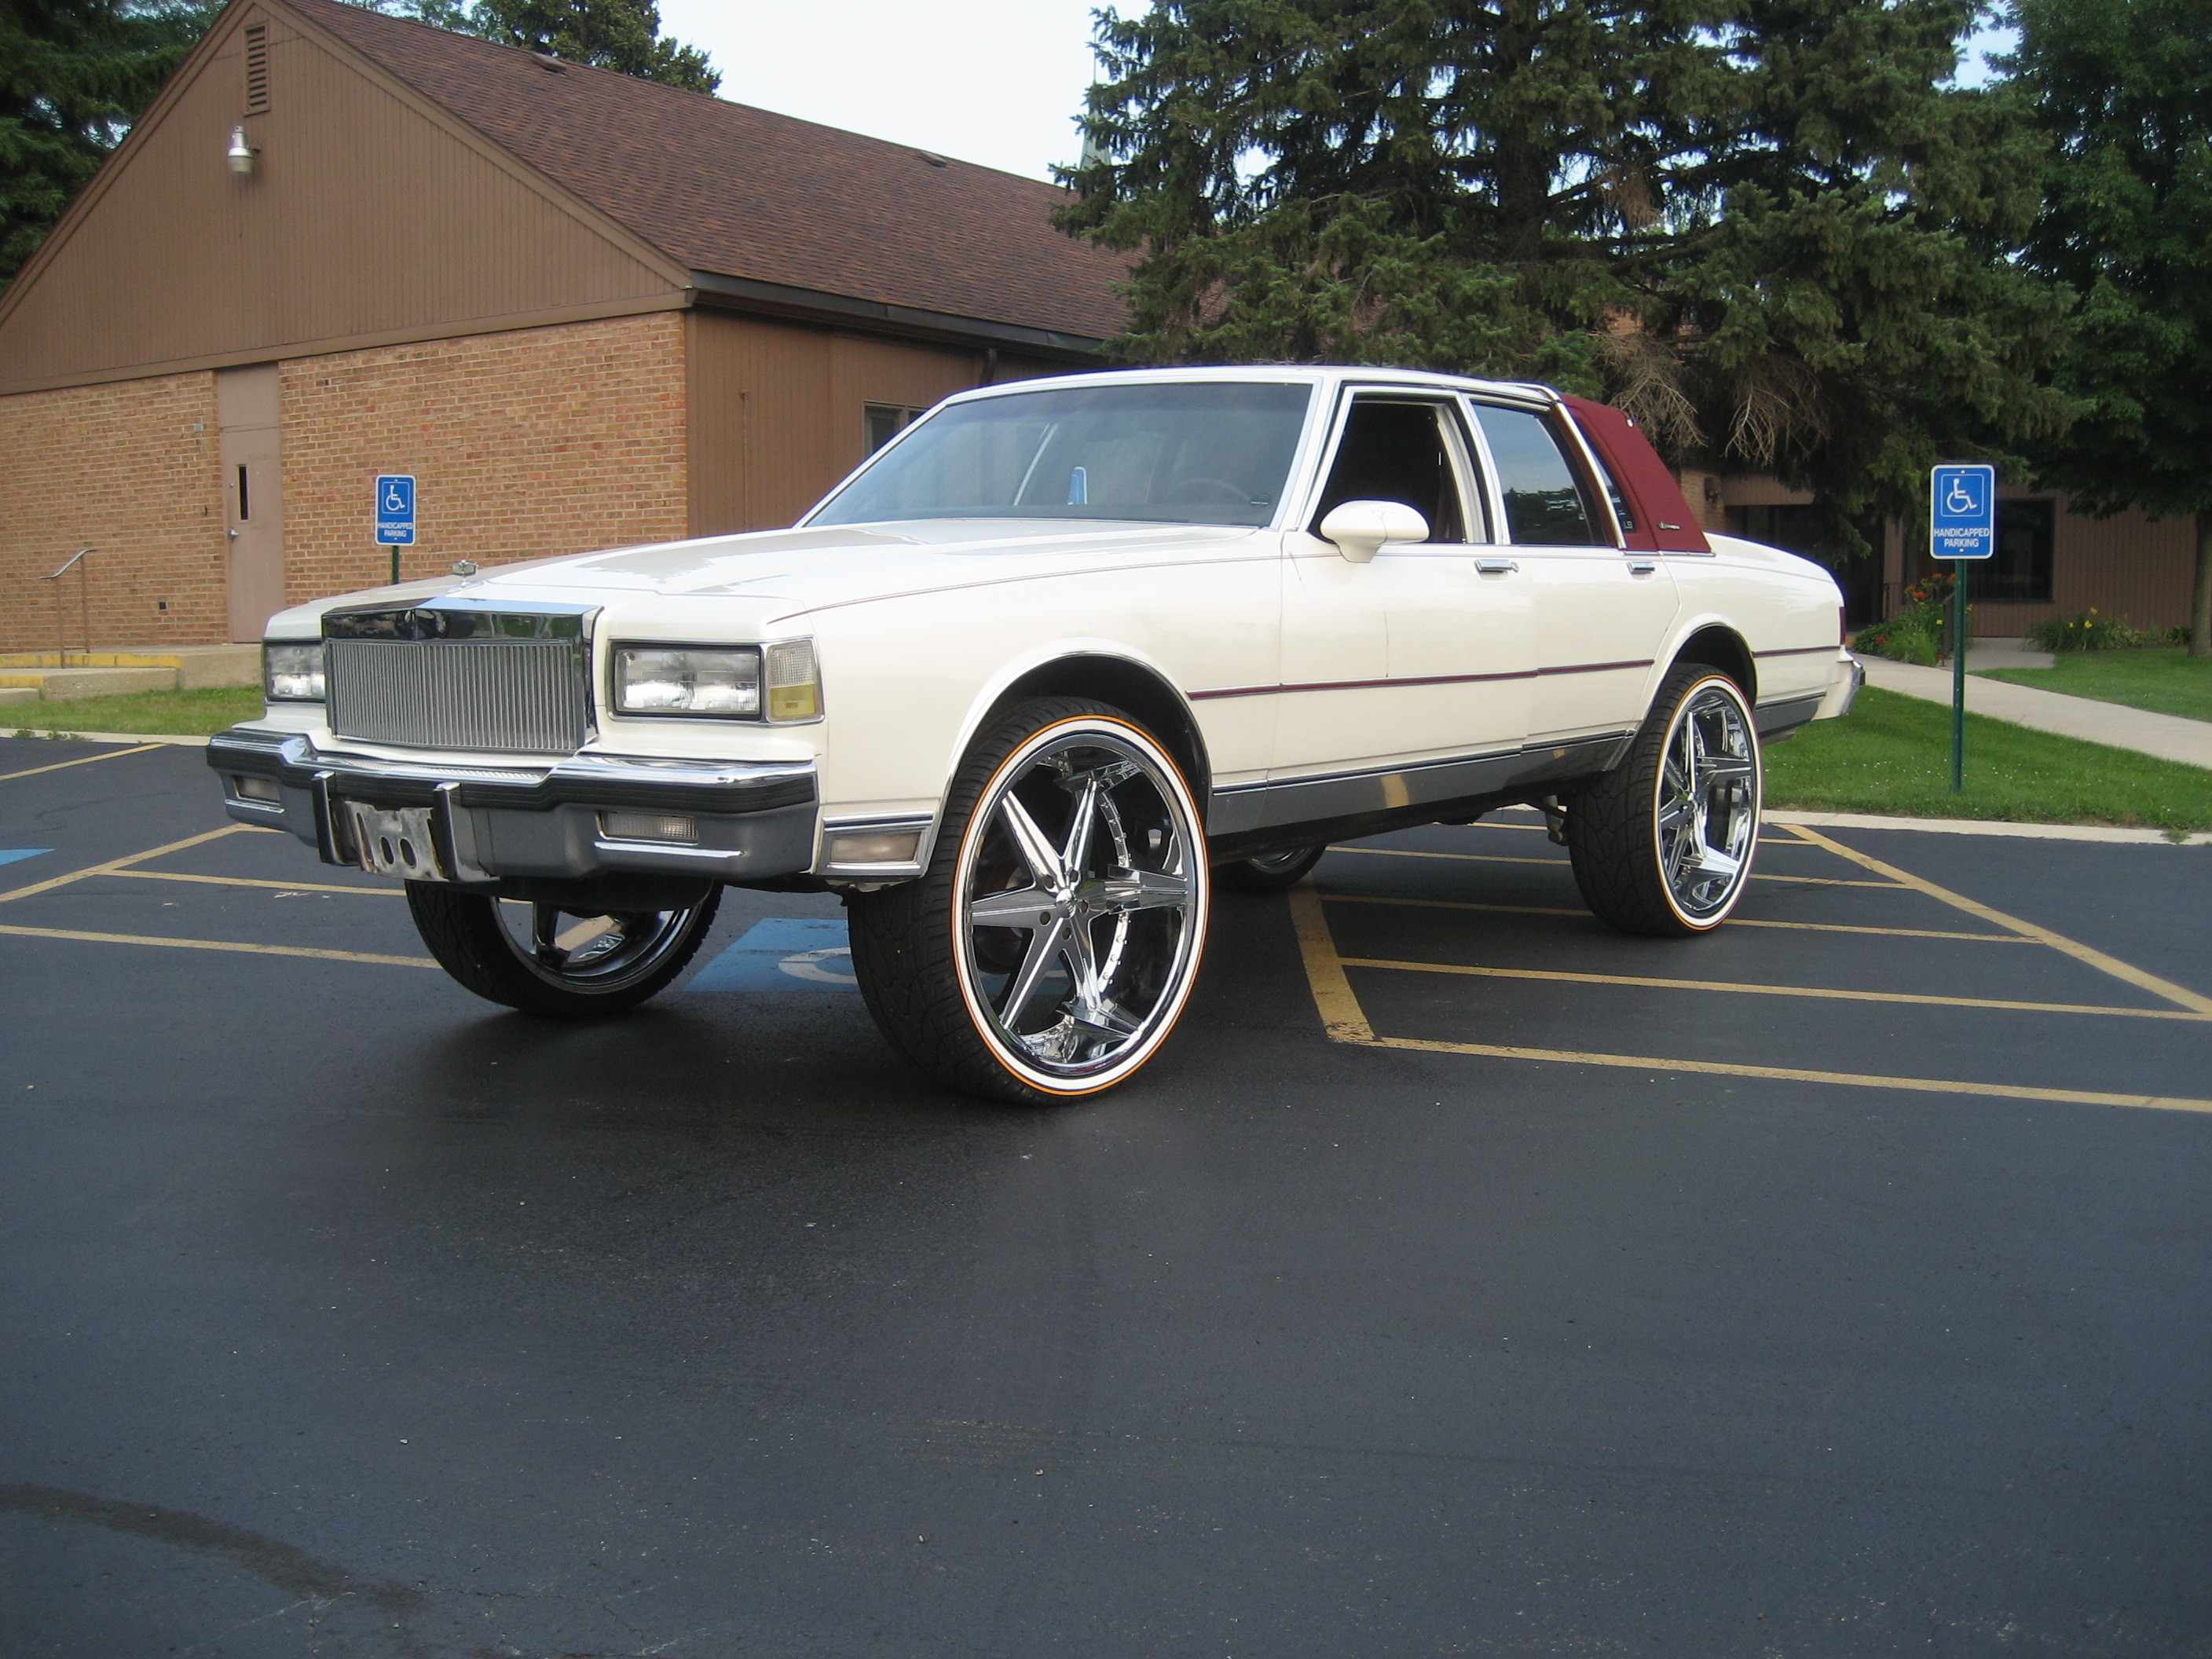 CHITOWNSILLEST 1985 Chevrolet Caprice 11517704